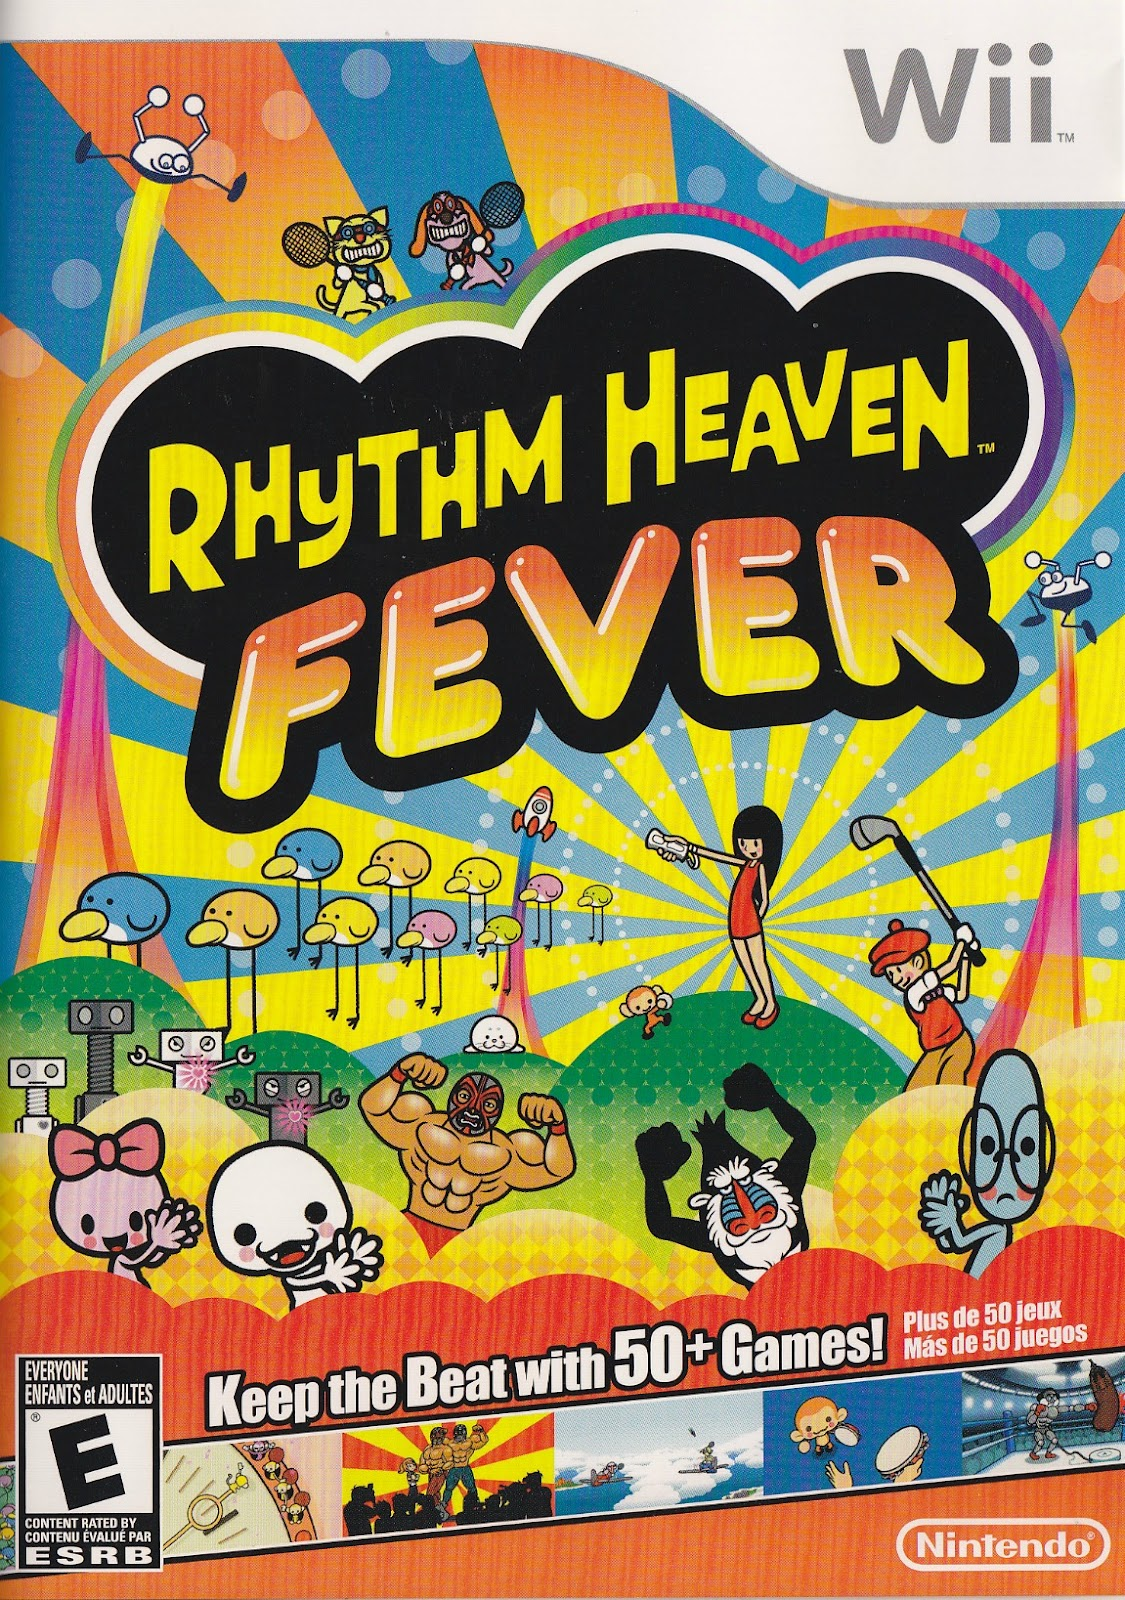 A Review: Simplicity + charm + rhythm = Rhythm Heaven Fever for Wii